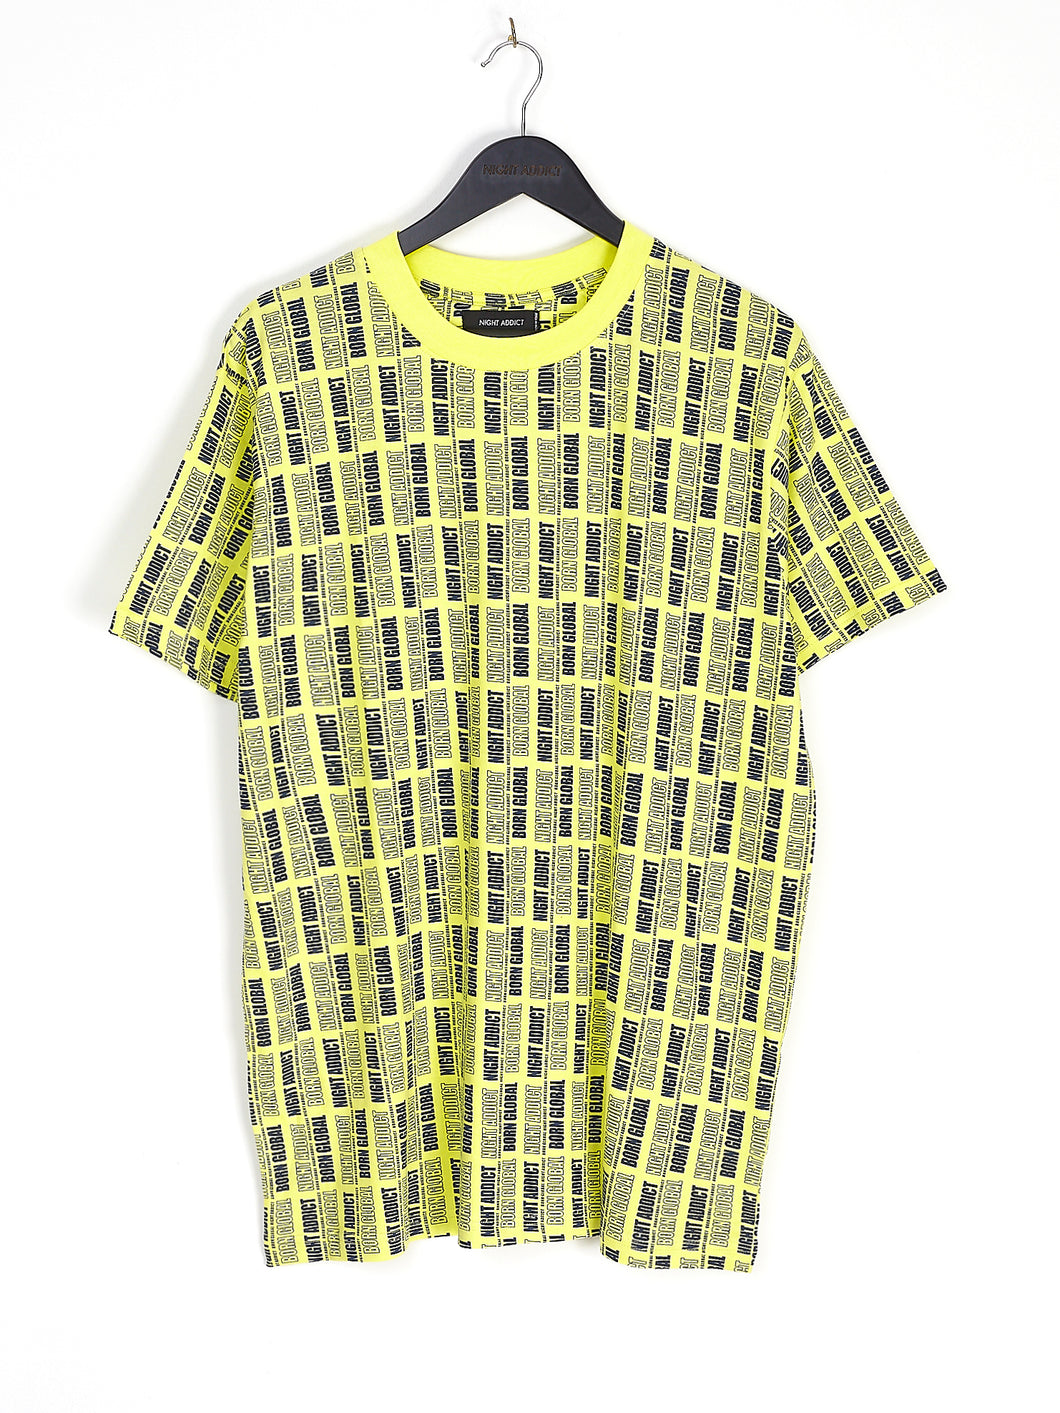 NIGHT ADDICT NEON YELLOW ALL OVER LOGO PRINT TEE FRONT